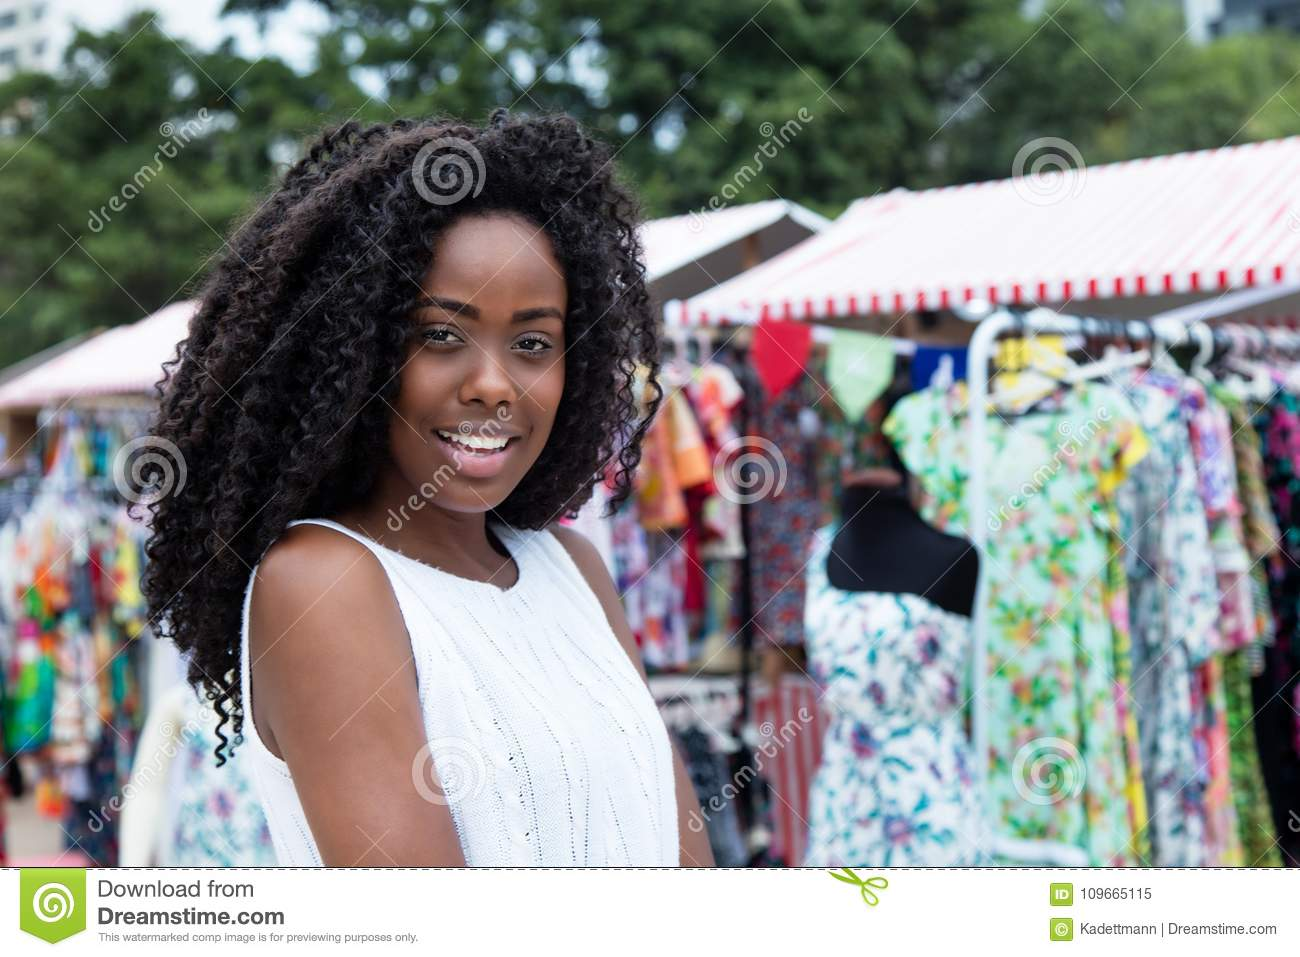 Download Laughing African American Woman Shopping At Market Stock Image - Image of nigerian, fashion: 109665115